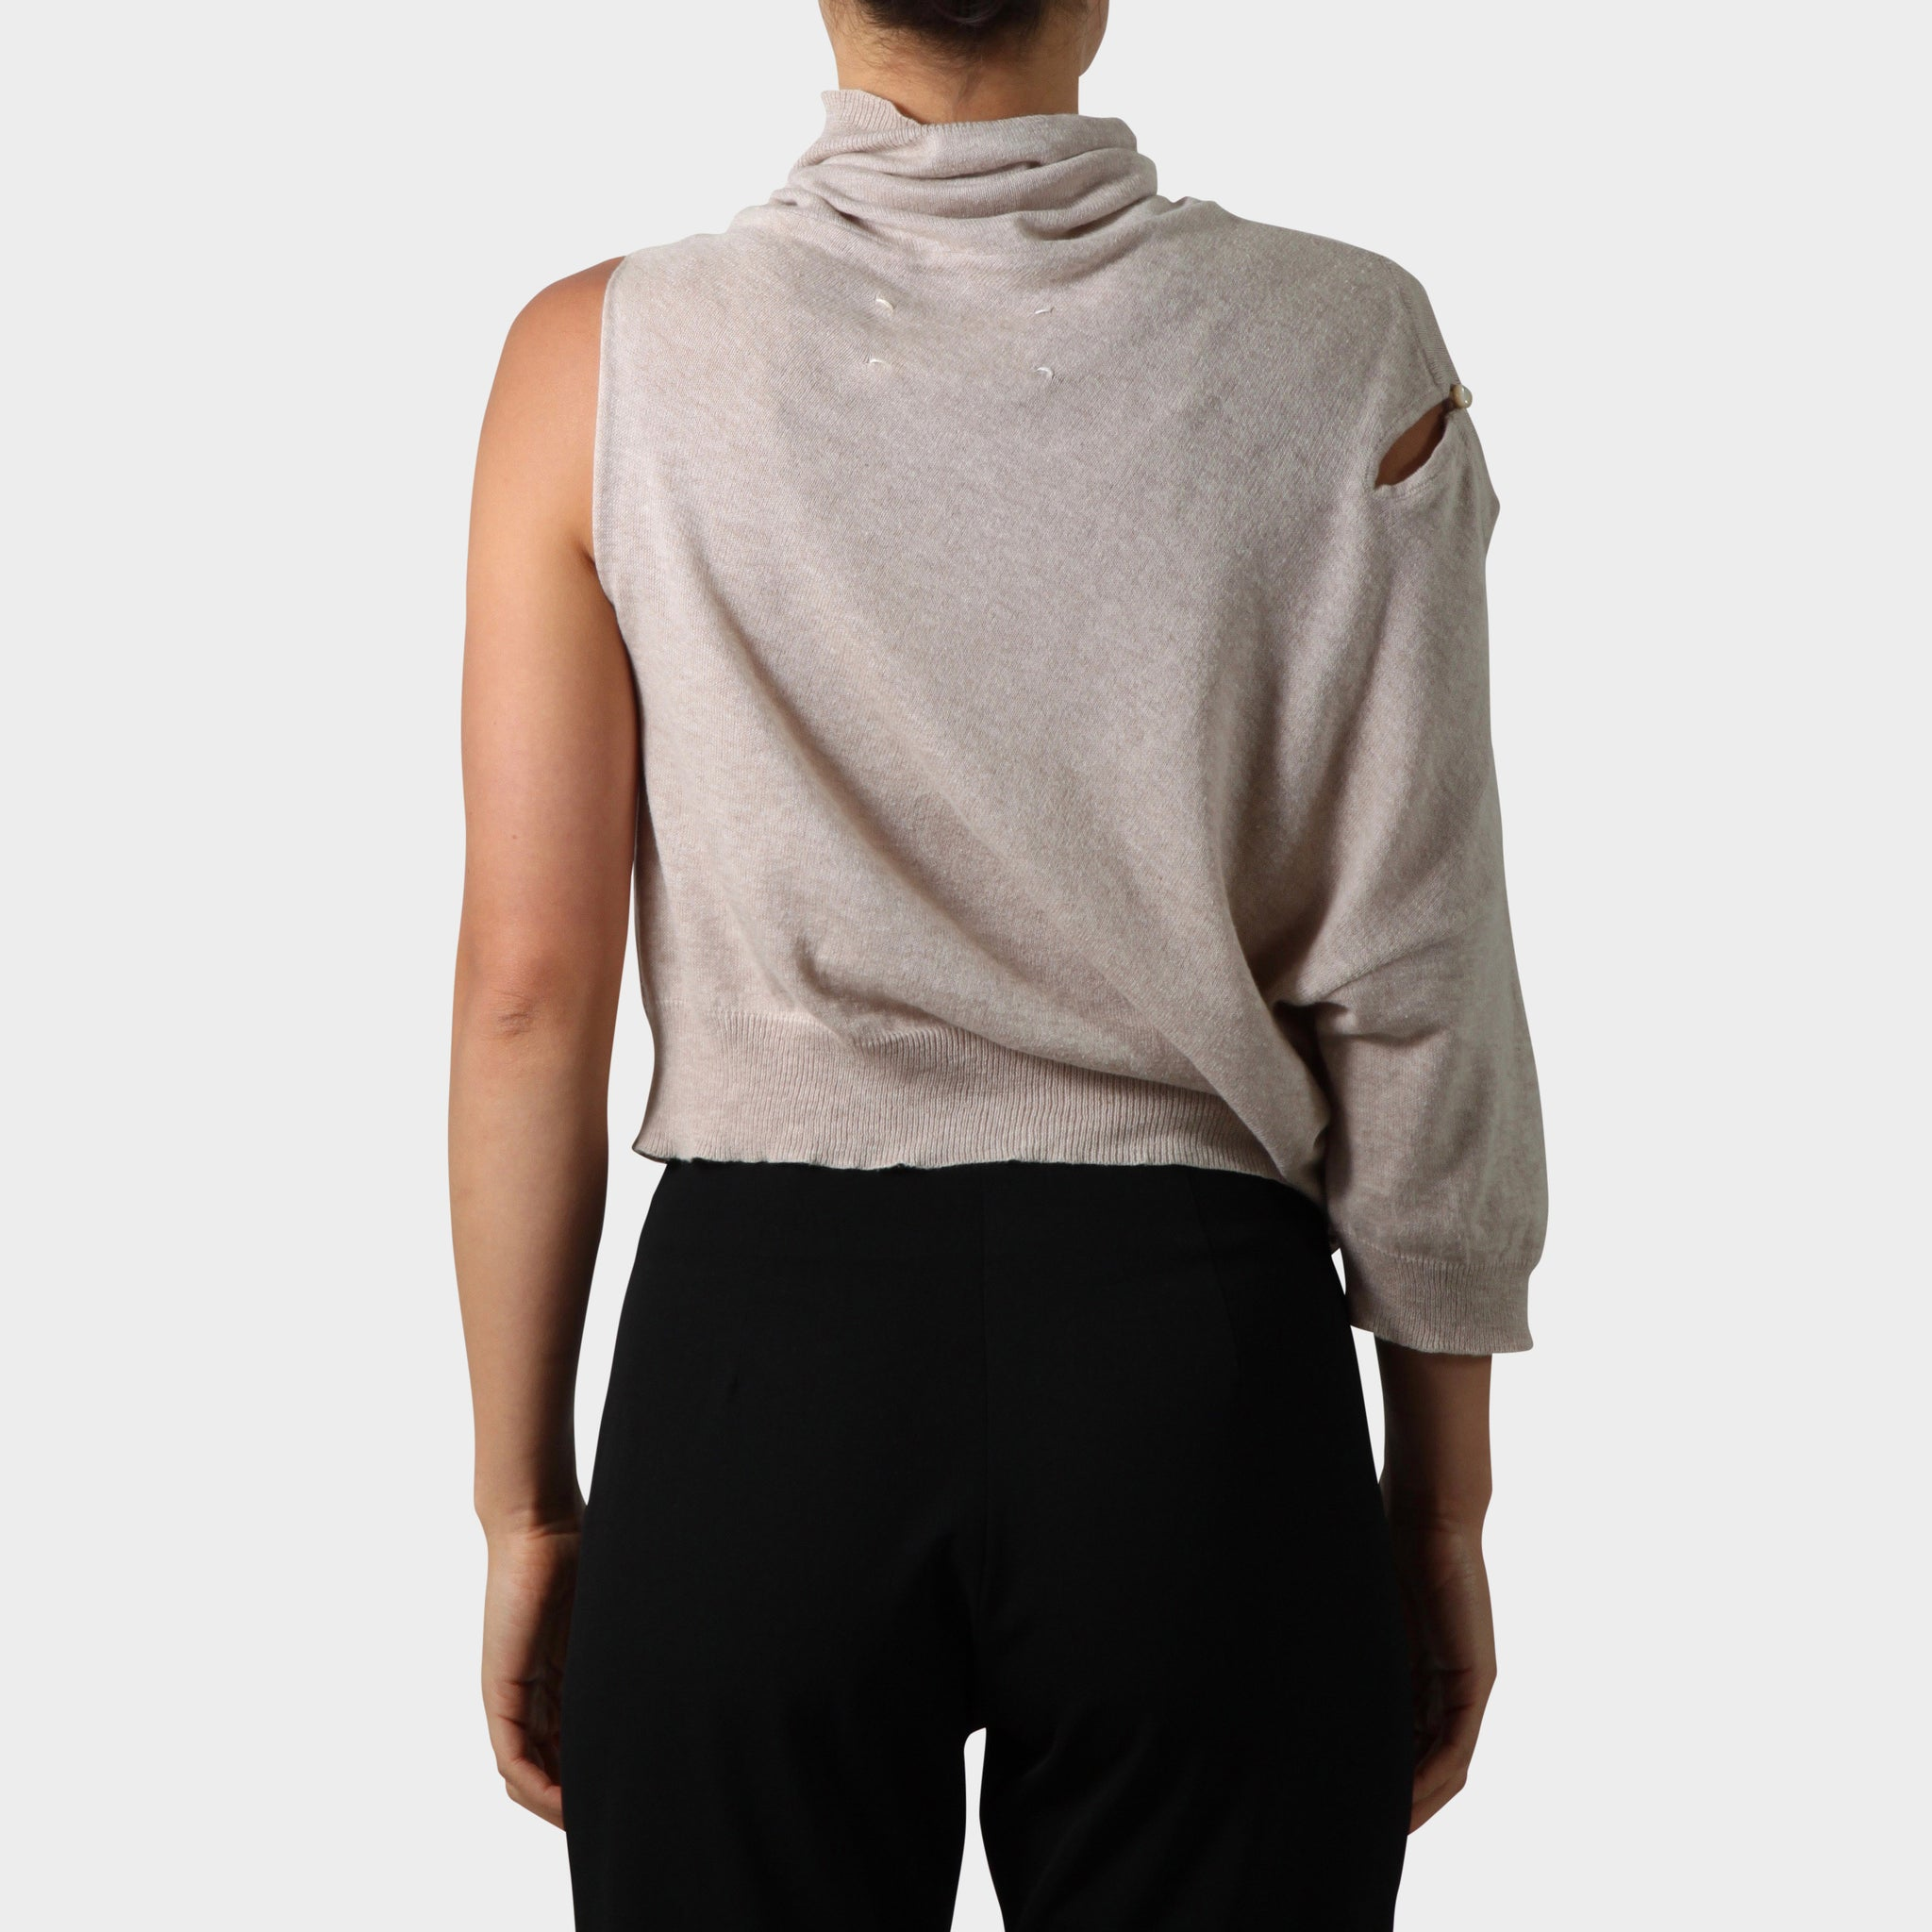 Maison Martin Margiela Sideways Mock Neck Jumper